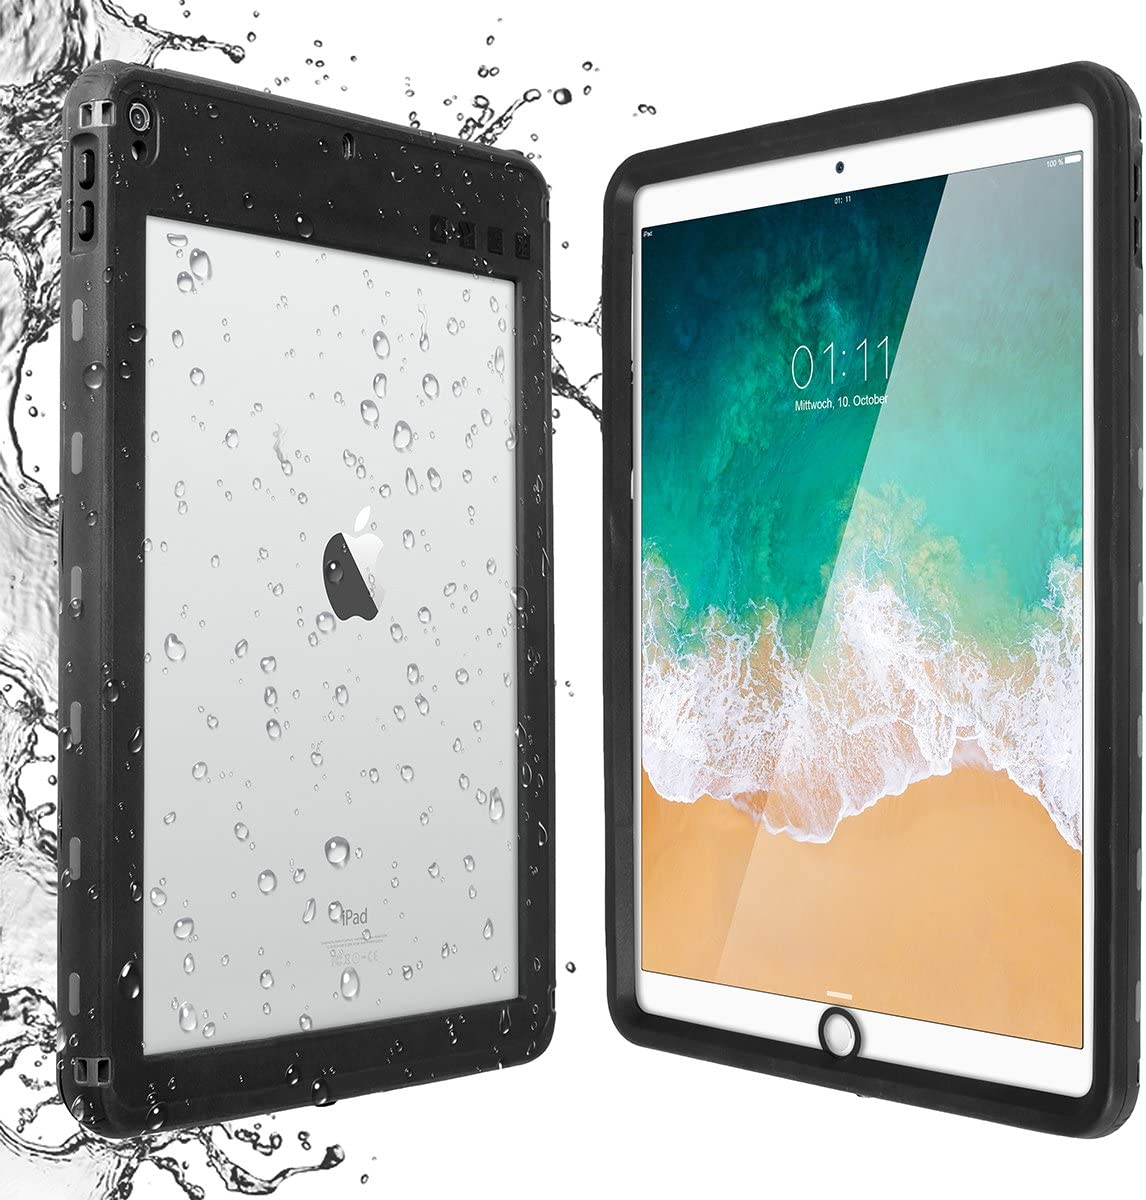 iPad Pro 10.5 Waterproof Case, AICase Water Resistant IP68 360 Degree All Round Protective Ultra Slim Thin Dust/Snow Proof with Lanyard for Apple iPad Pro10.5'' 2017-Black